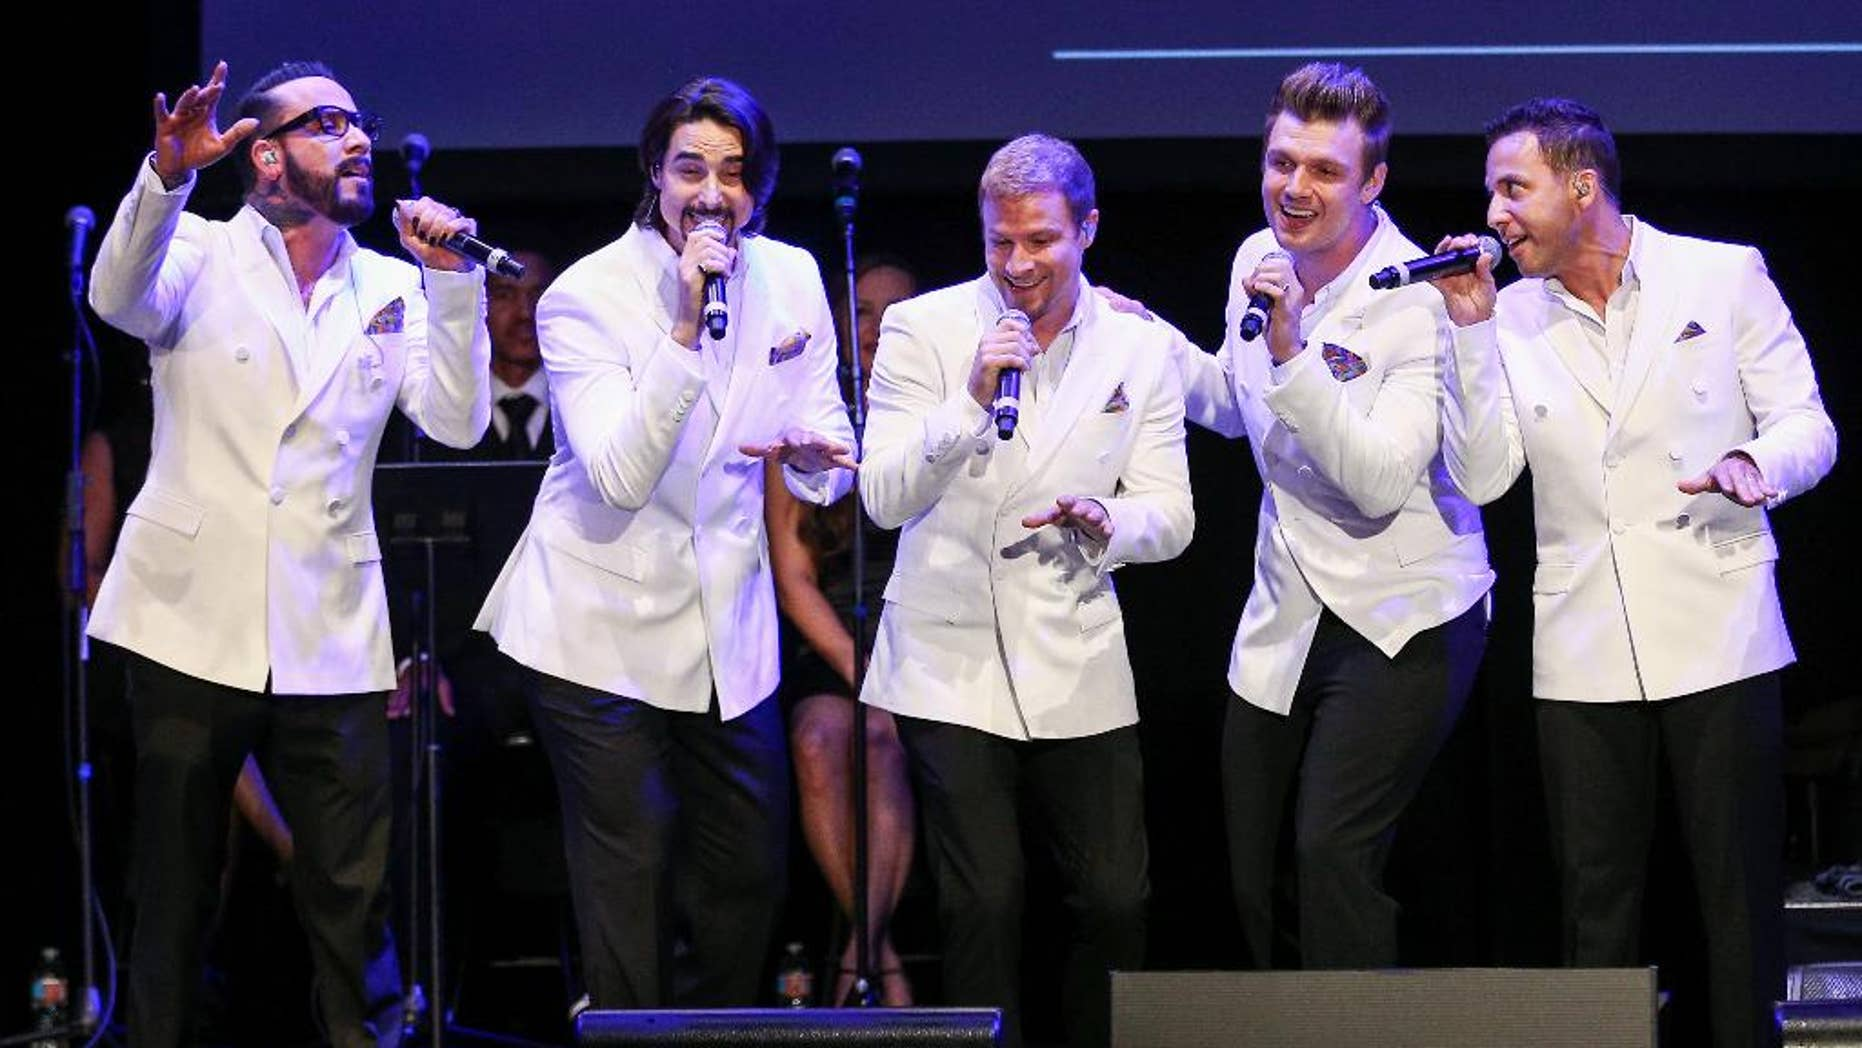 The Backstreet boys will not be rescheduling an Oklahoma concert that was postponed in August after 14 people were injured when severe wind knocked down the venue entrance.